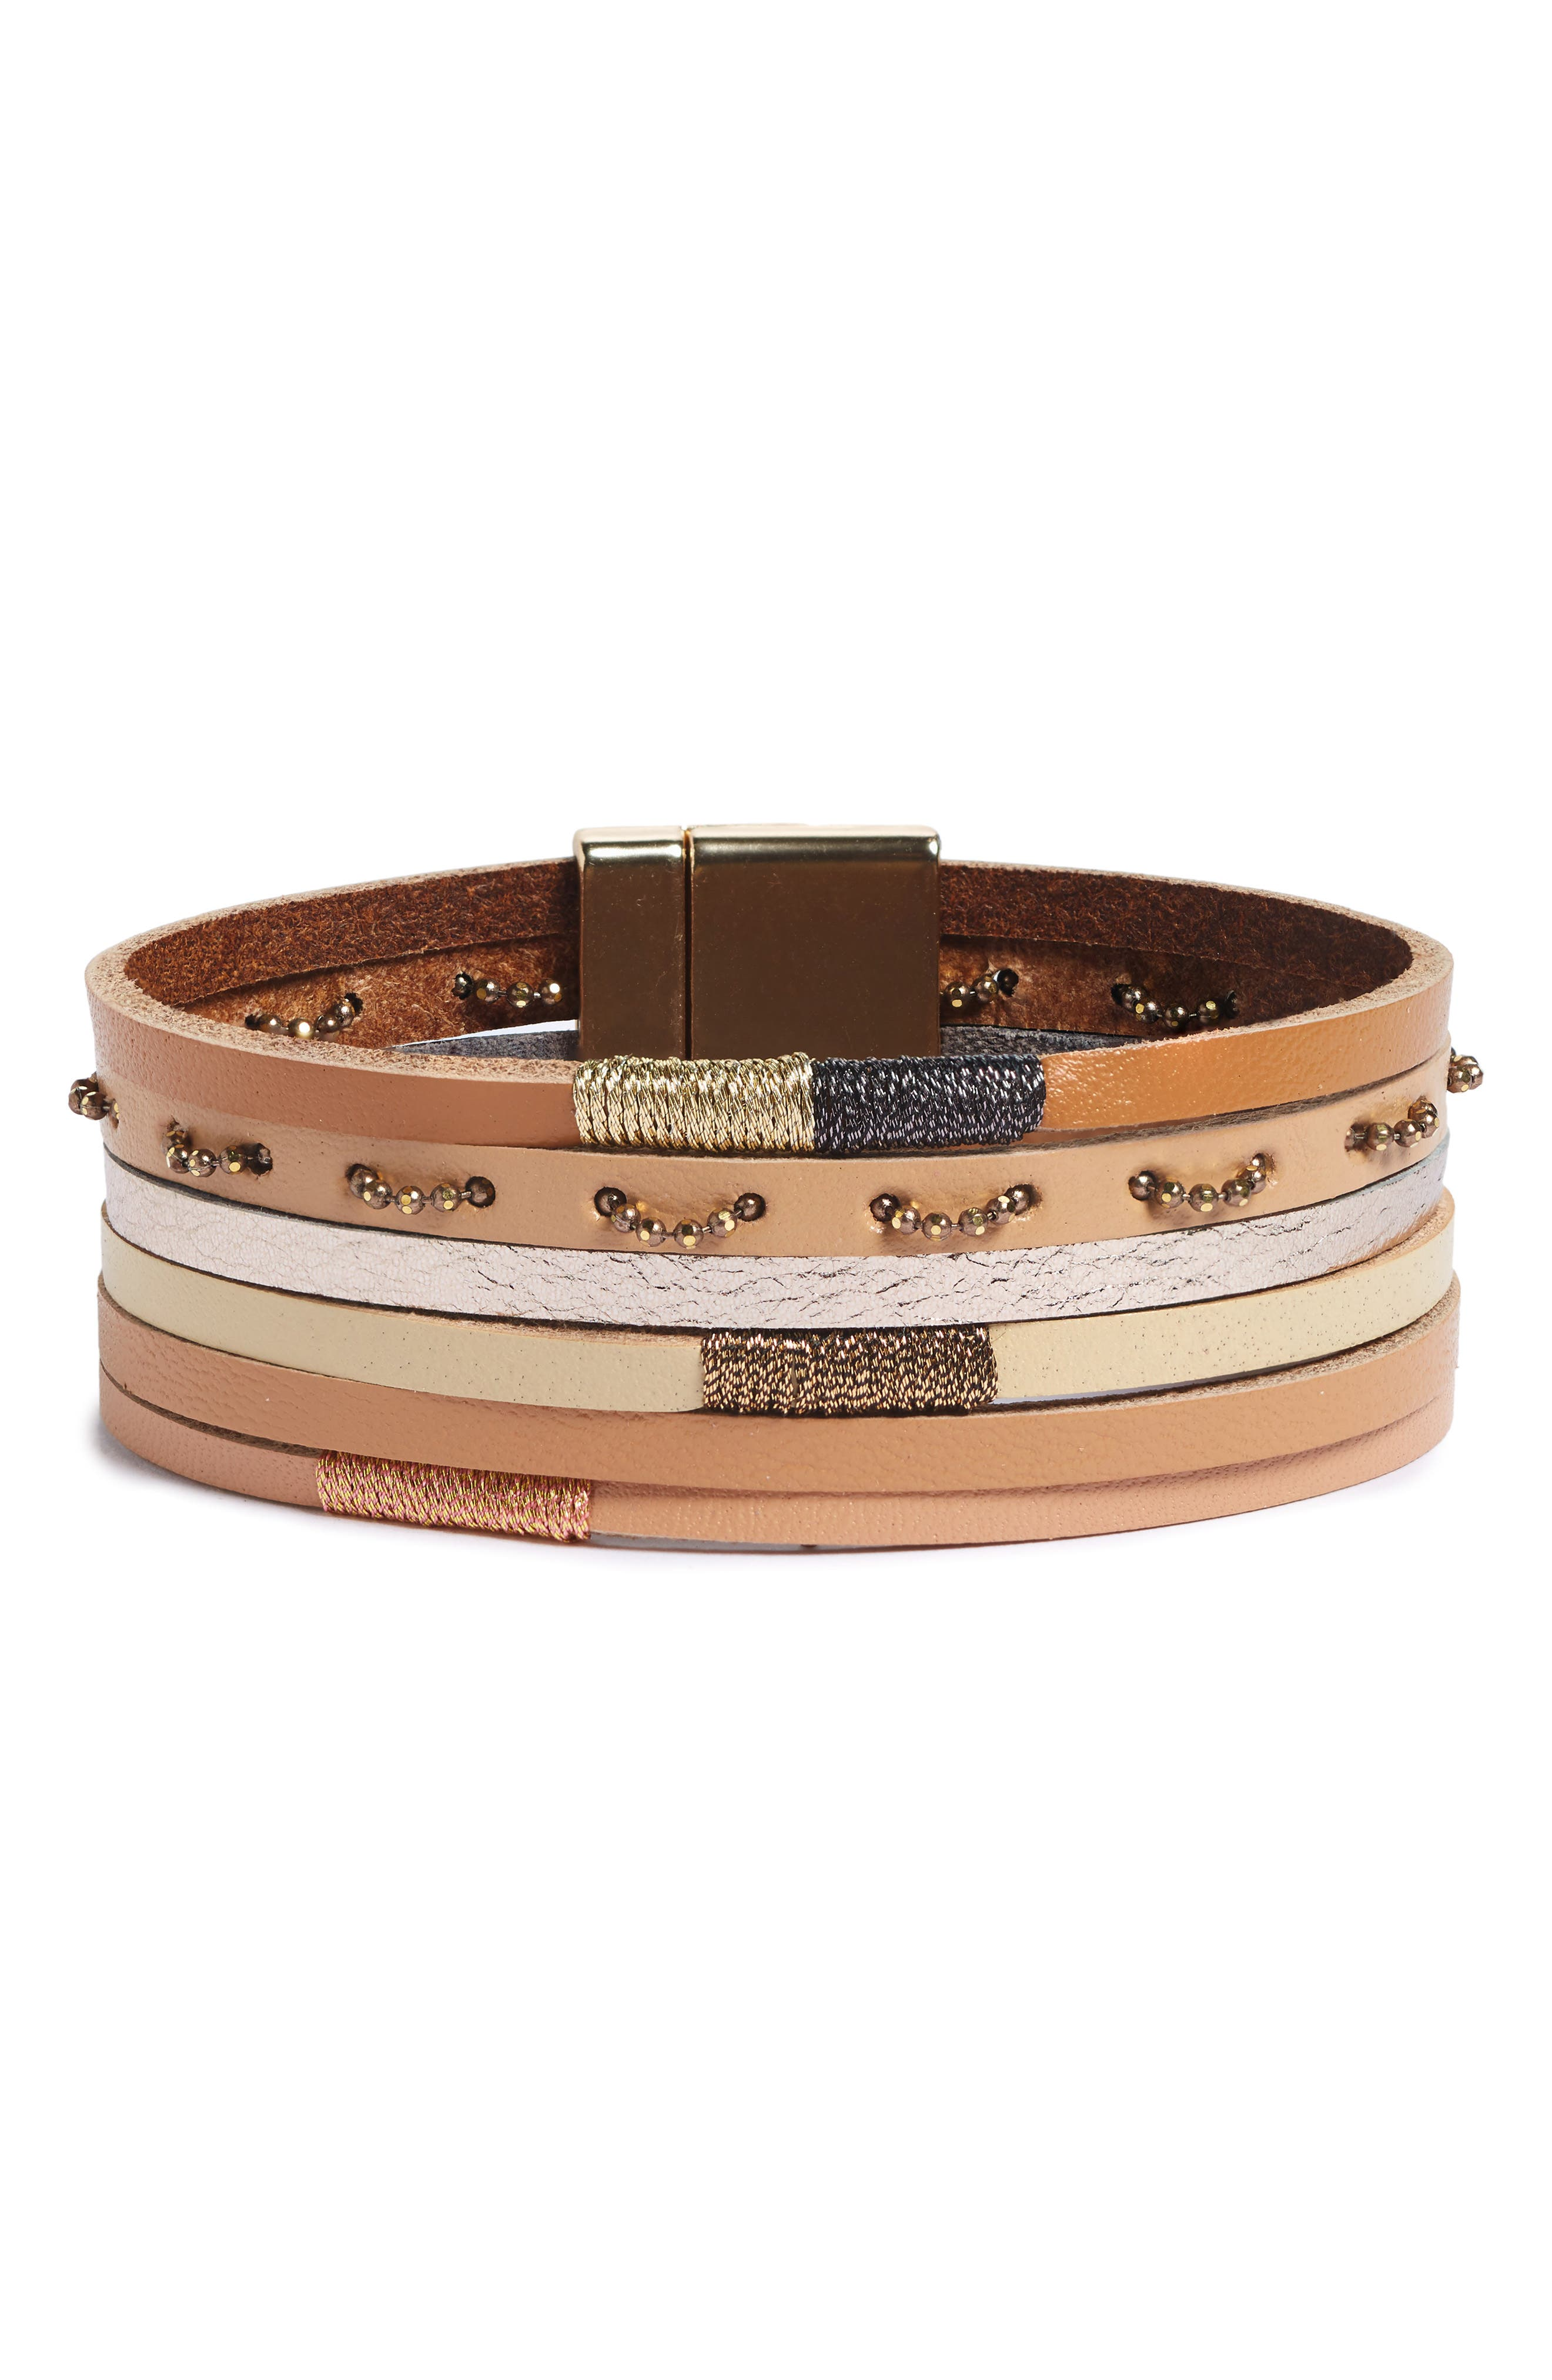 Multi Row Leather Bracelet,                             Main thumbnail 1, color,                             Ivory